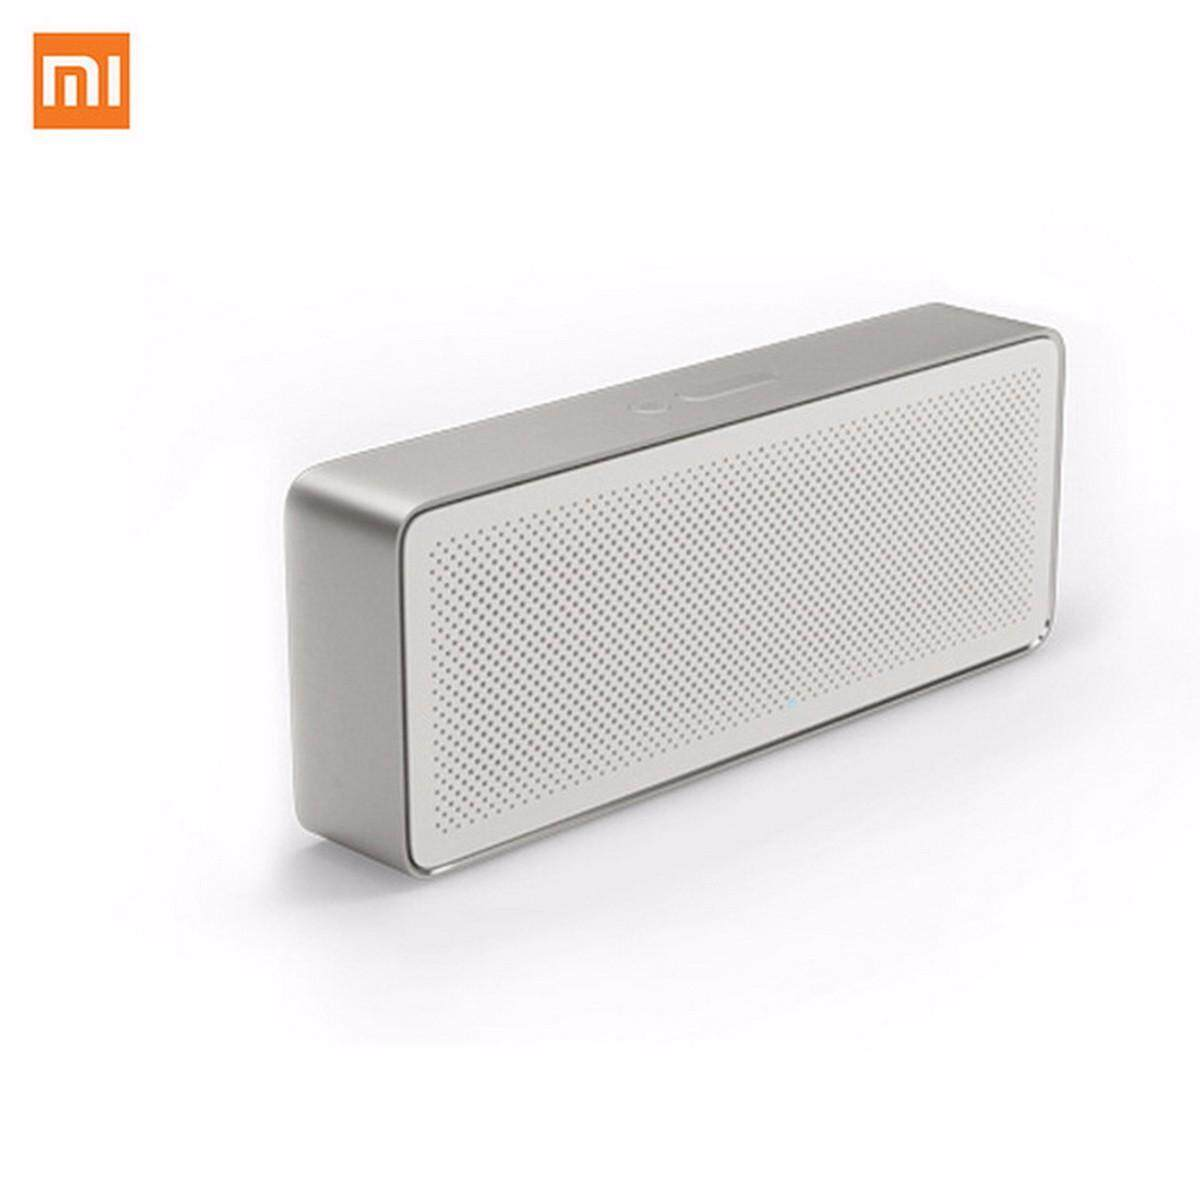 Original Xiaomi Mi Bluetooth Speaker Square Box, 2 Stereo Portable Bluetooth V4.2 High Definition Soundbox Other/Speaker